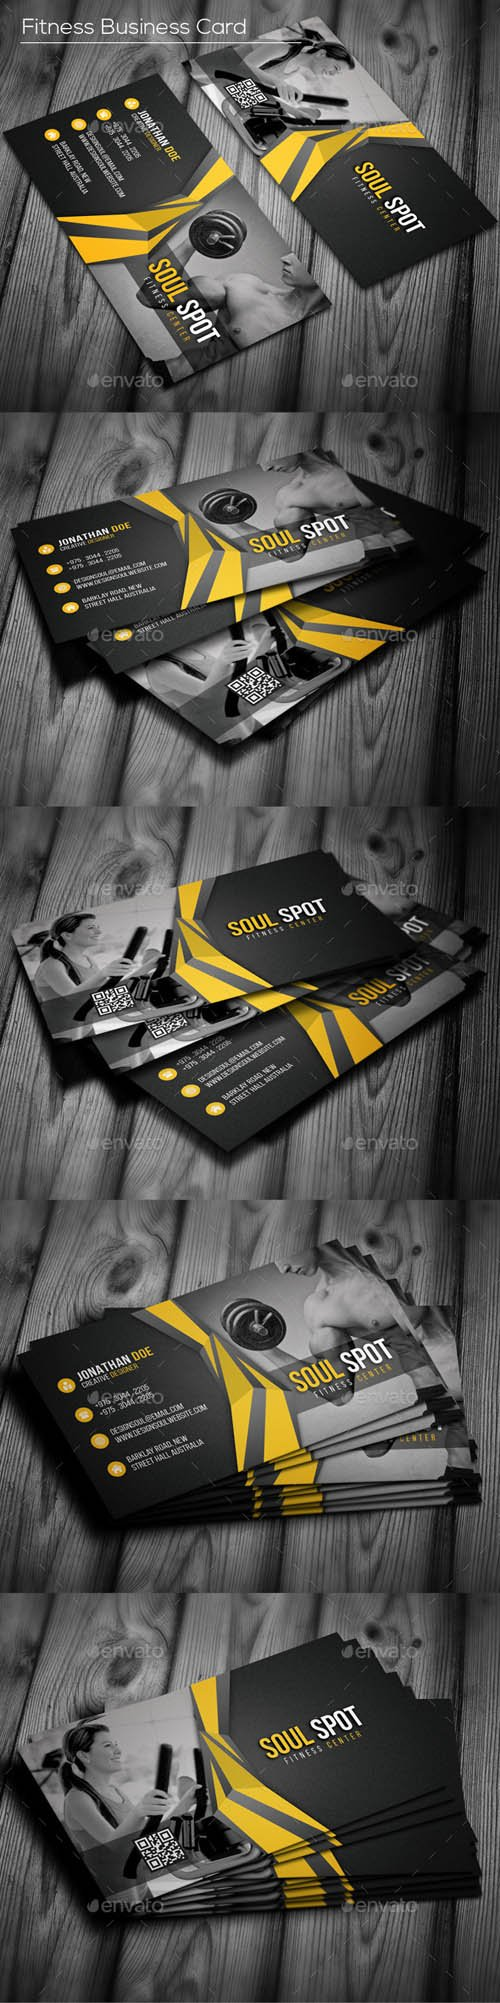 GR - Fitness Business Card 16835858